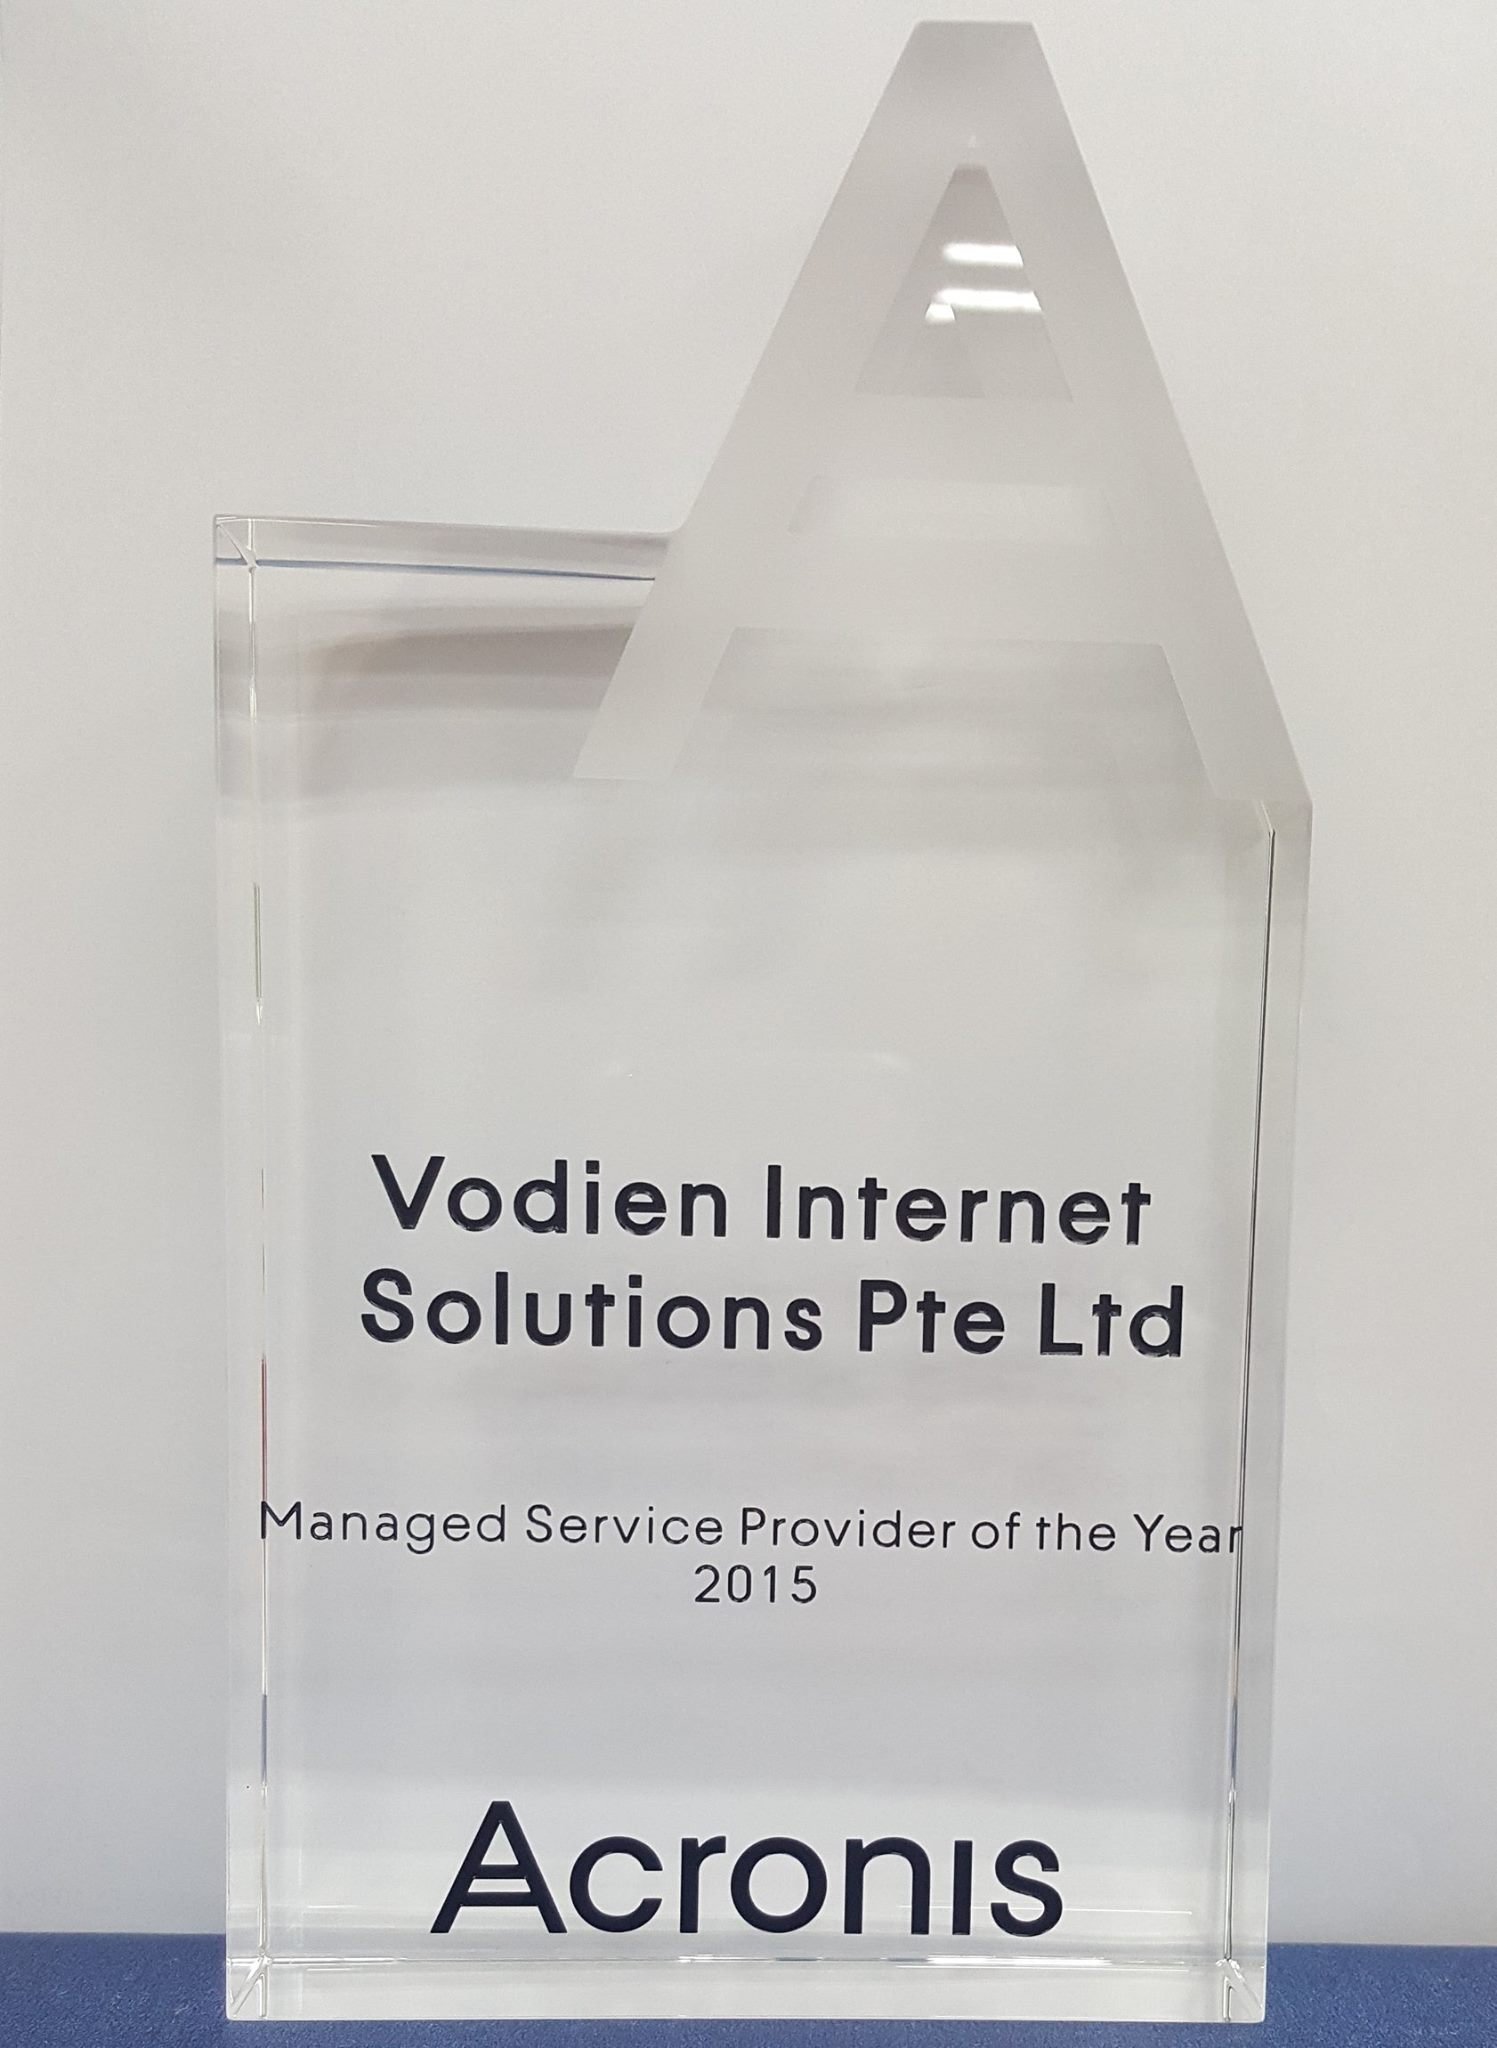 Vodien Won the Acronis Managed Service Provider of the Year 2015